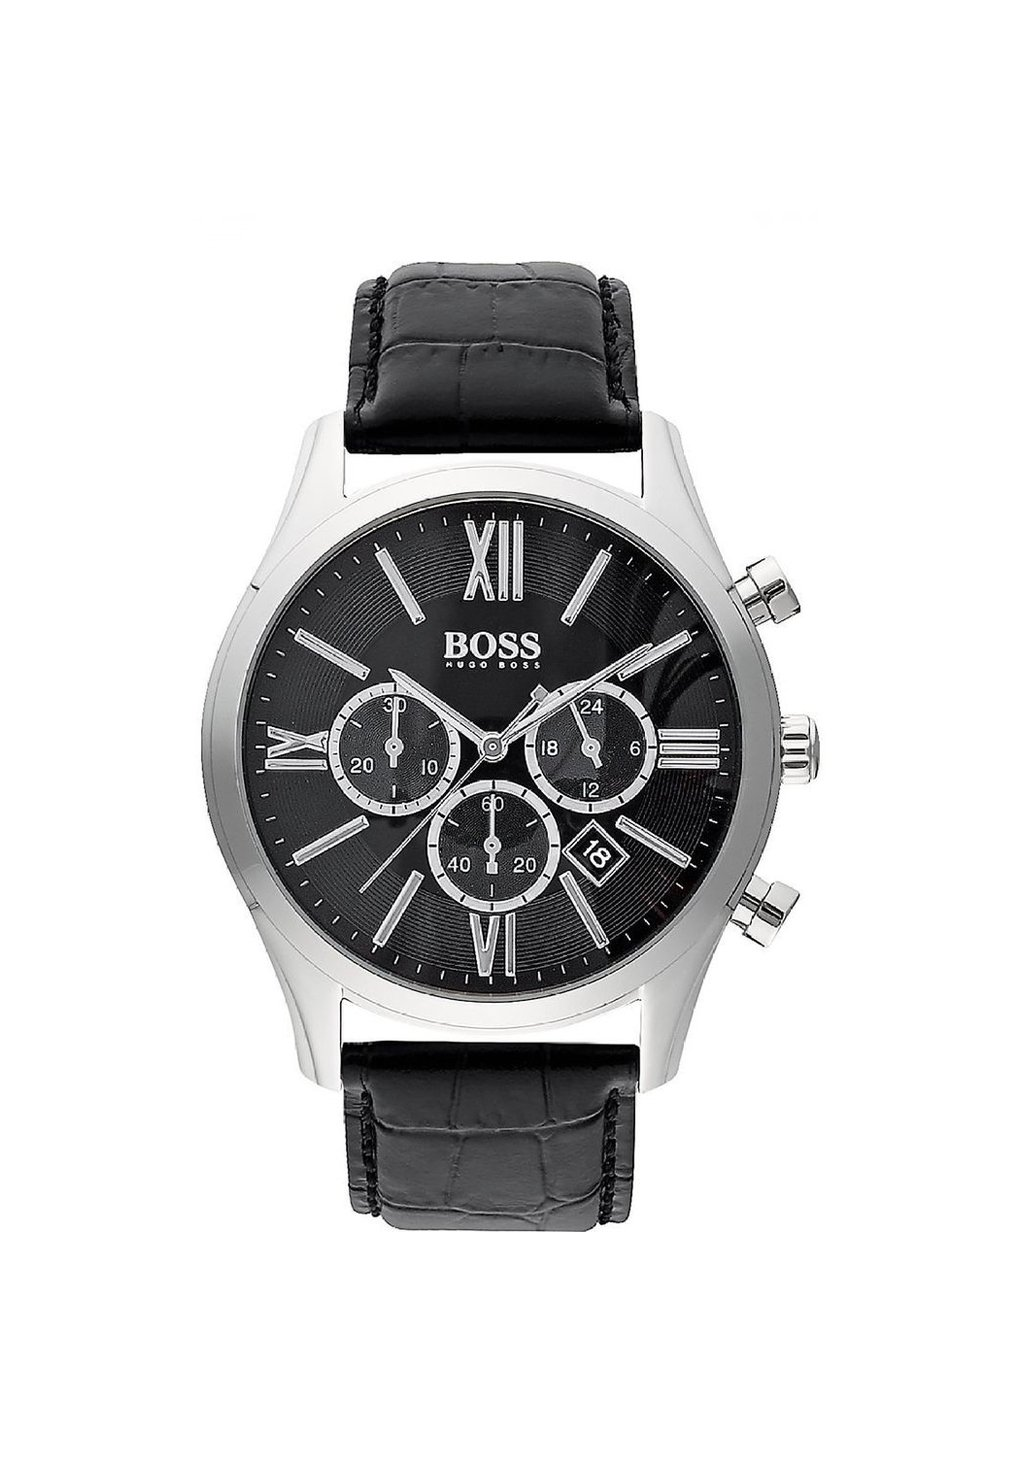 Hugo Boss Men's 1513194 'Ambassador' Chronograph Black Leather Watch